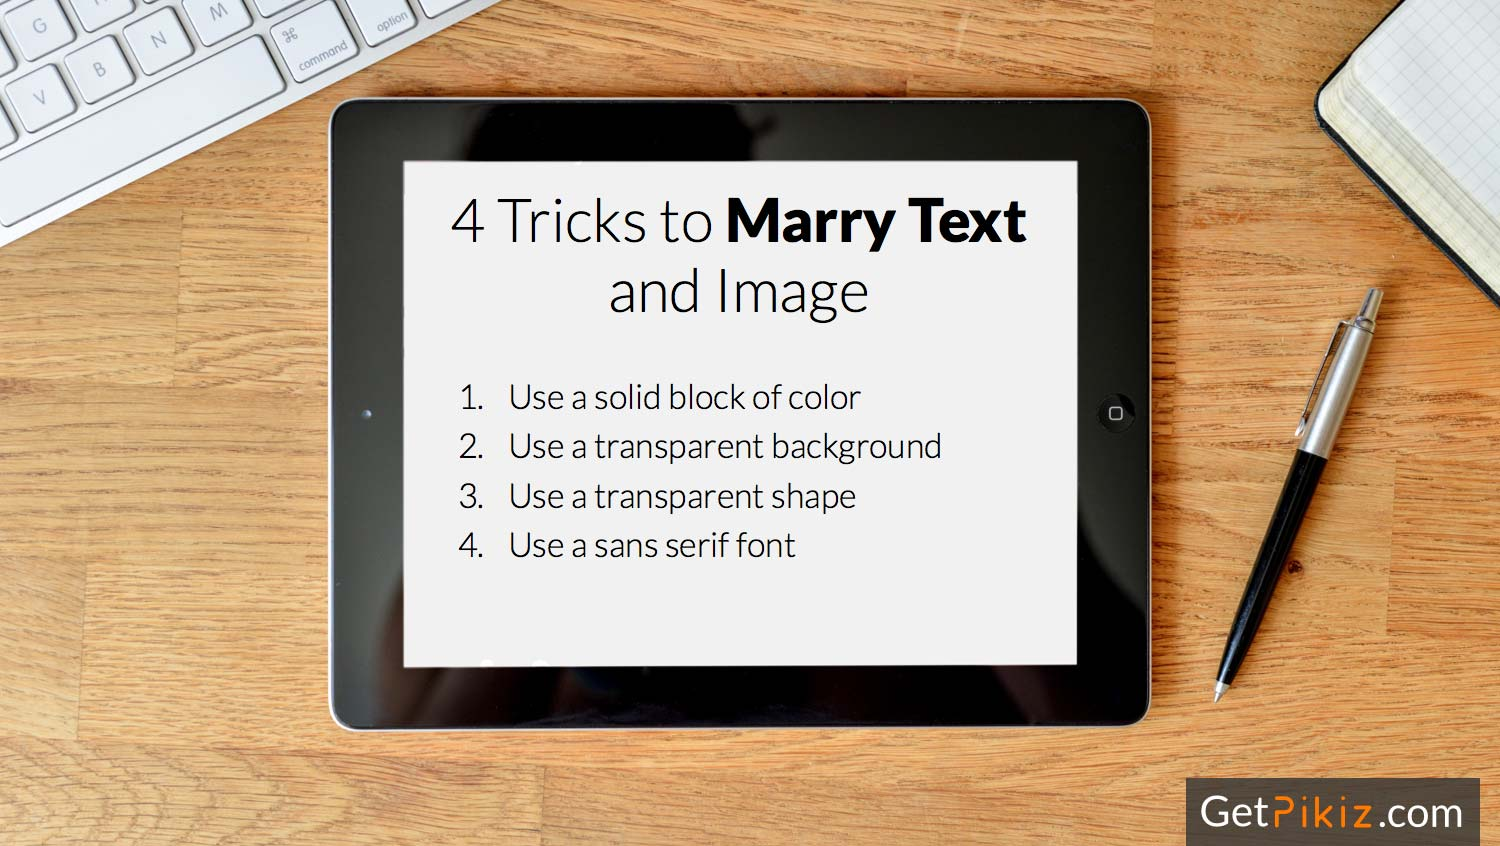 4 Tricks to Marry Text and Image